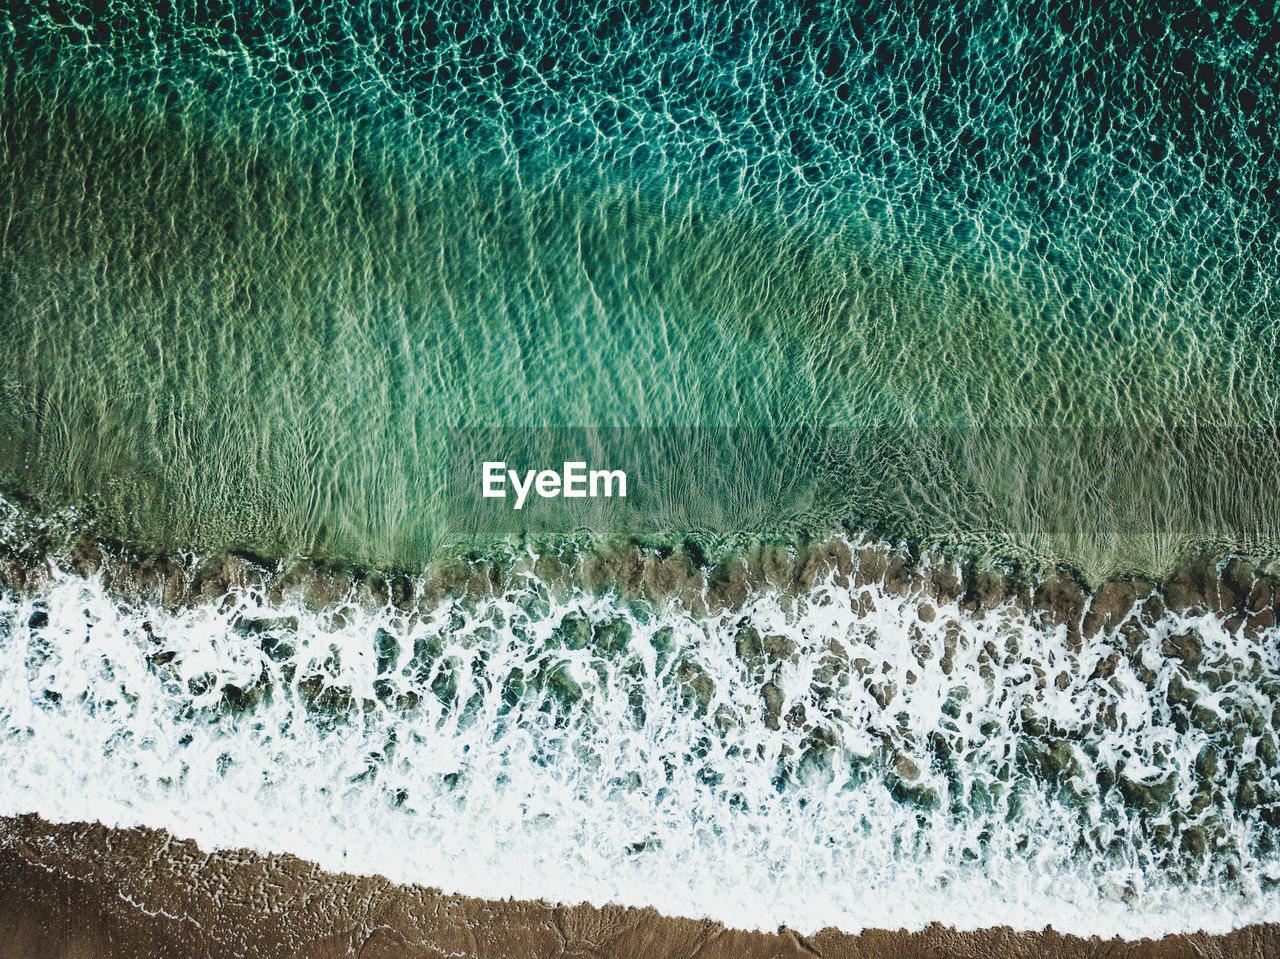 water, sea, aquatic sport, motion, surfing, sport, wave, day, nature, beauty in nature, land, beach, scenics - nature, power, splashing, power in nature, high angle view, outdoors, flowing water, breaking, turquoise colored